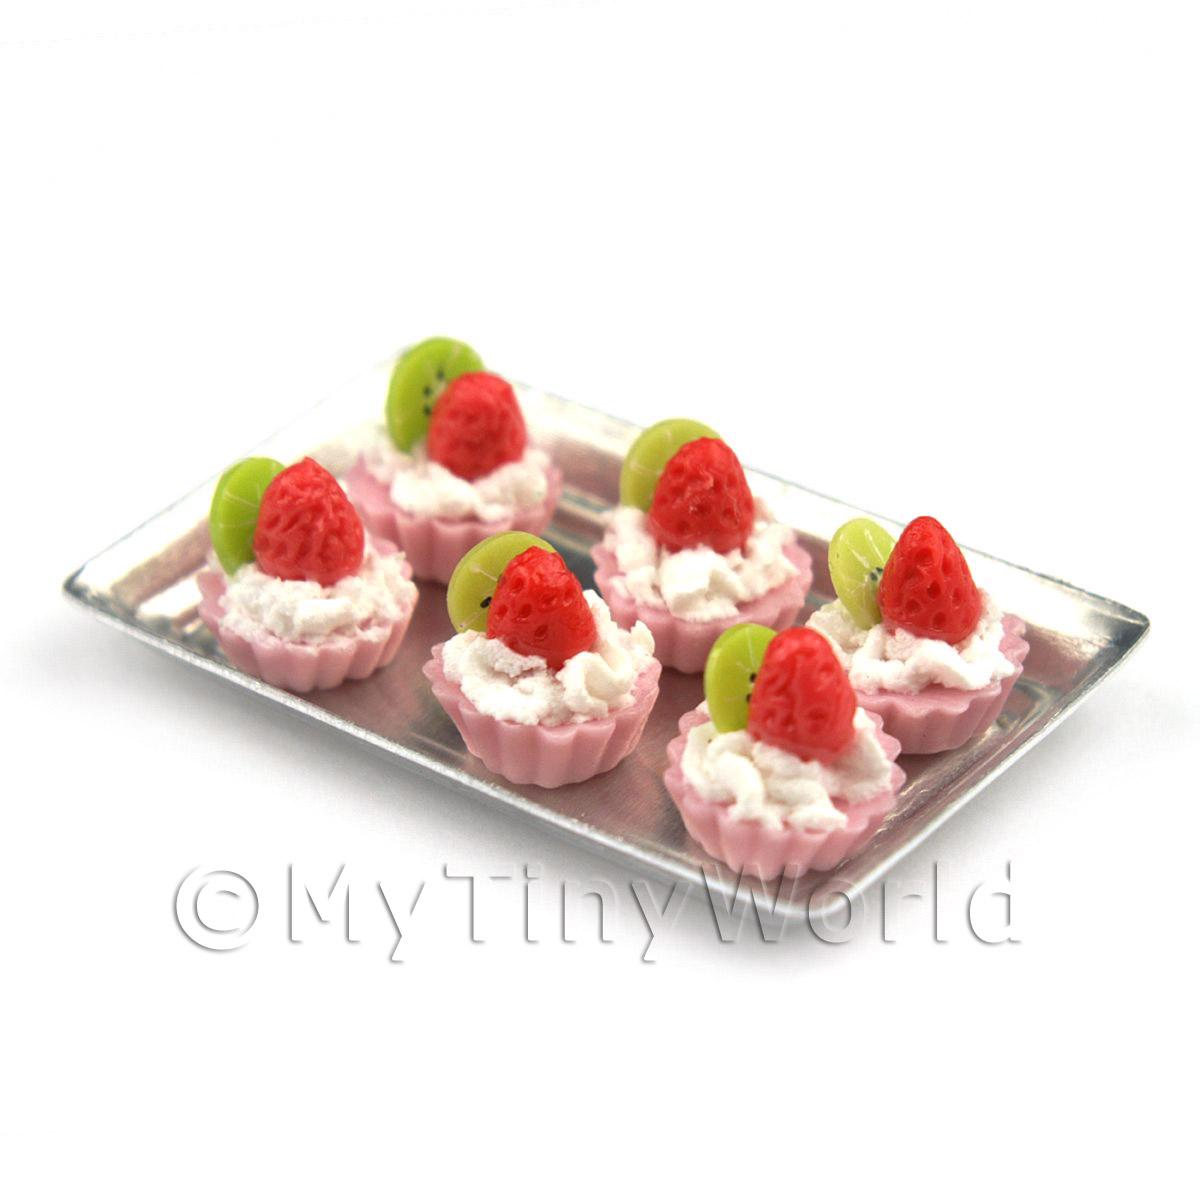 6 Loose Dolls House Miniature  Strawberry and Kiwi Tarts on a Tray